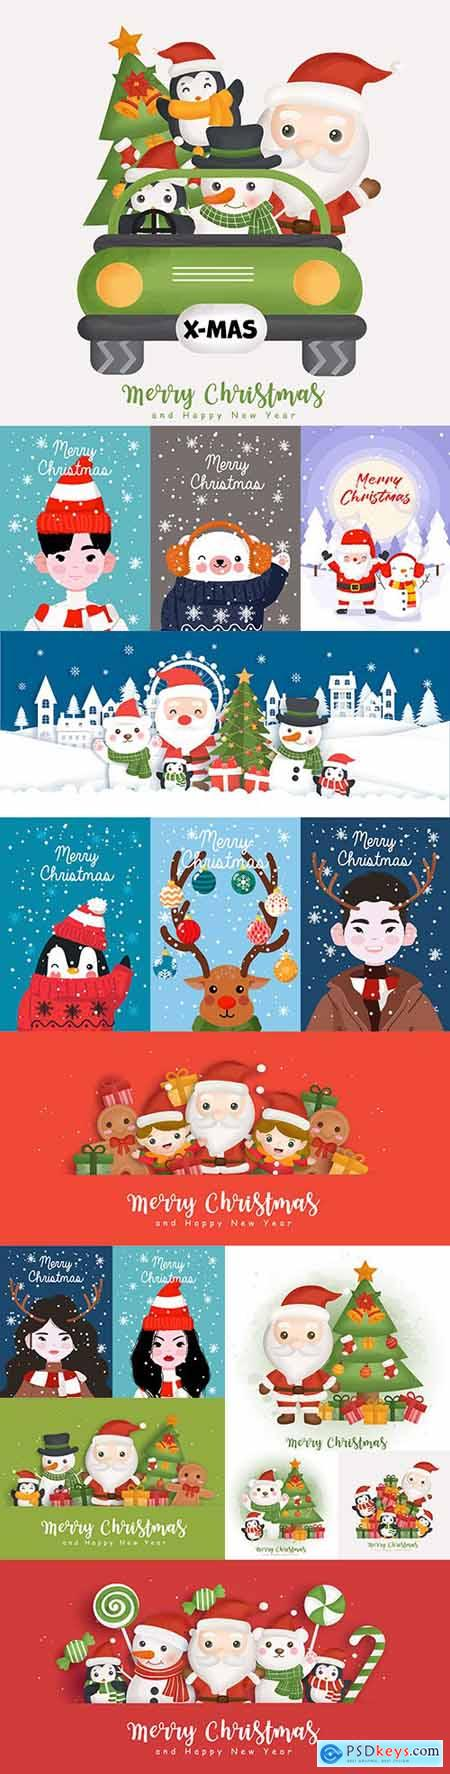 Merry Christmas Santa Claus elements and themed painted flat illustrations